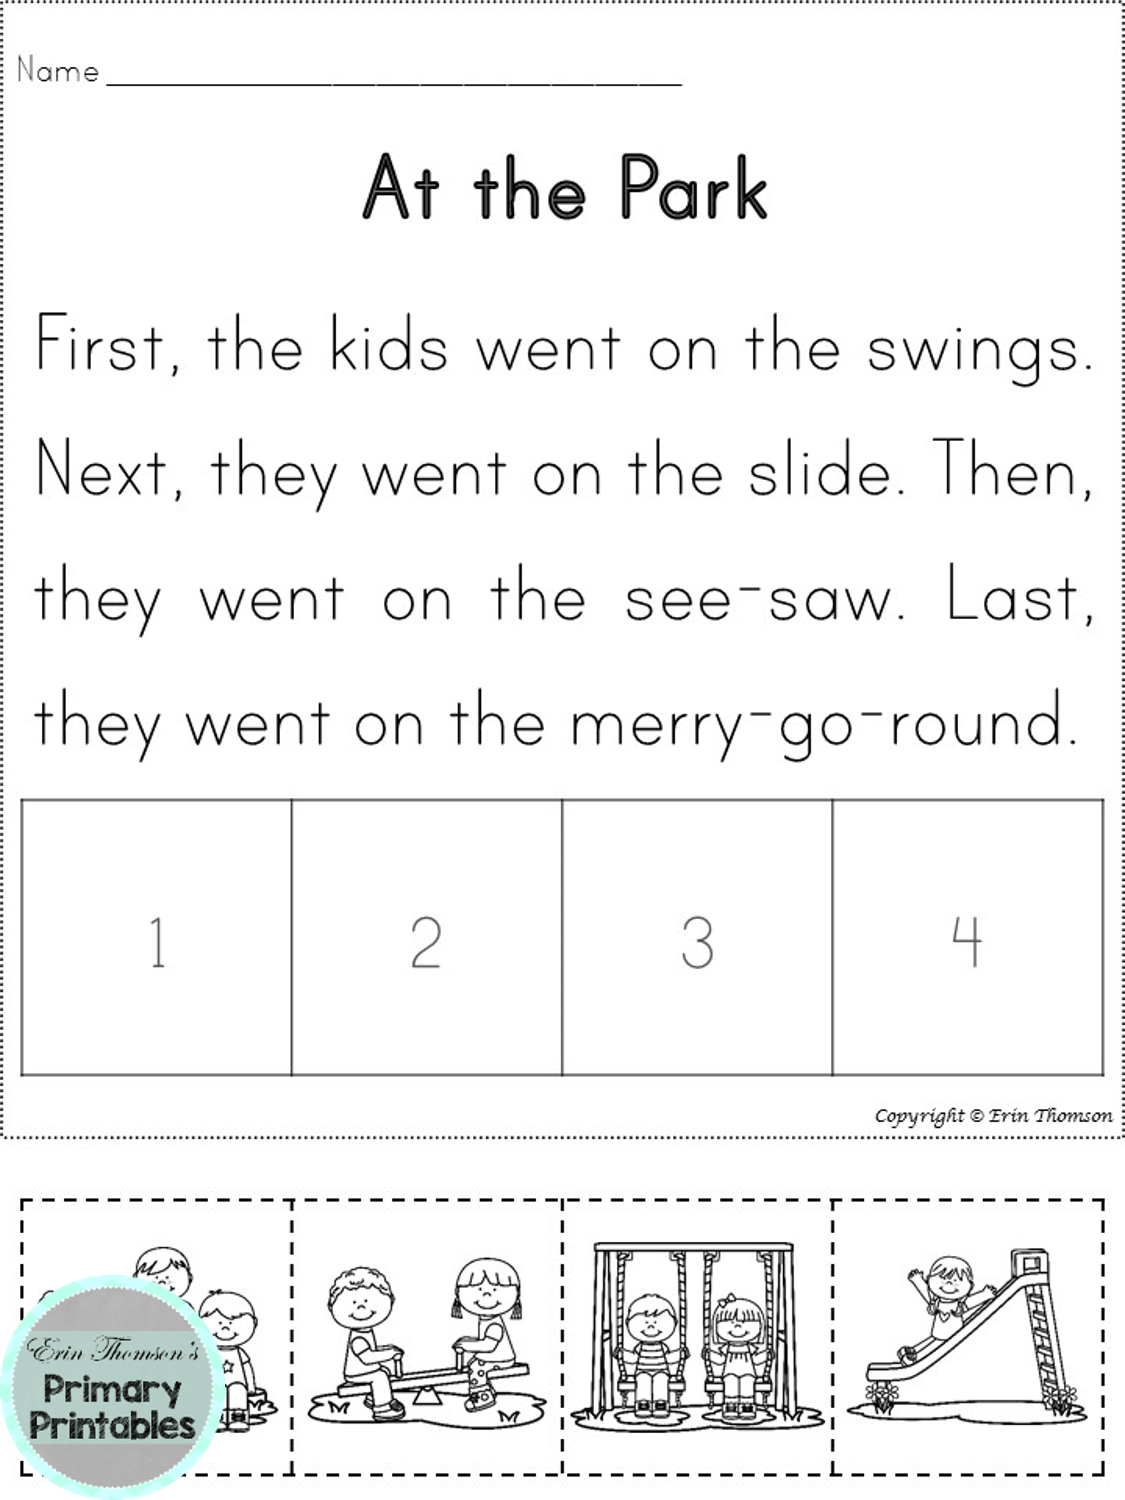 4 Part Sequencing Story ~ At The Park (First, Next, Then